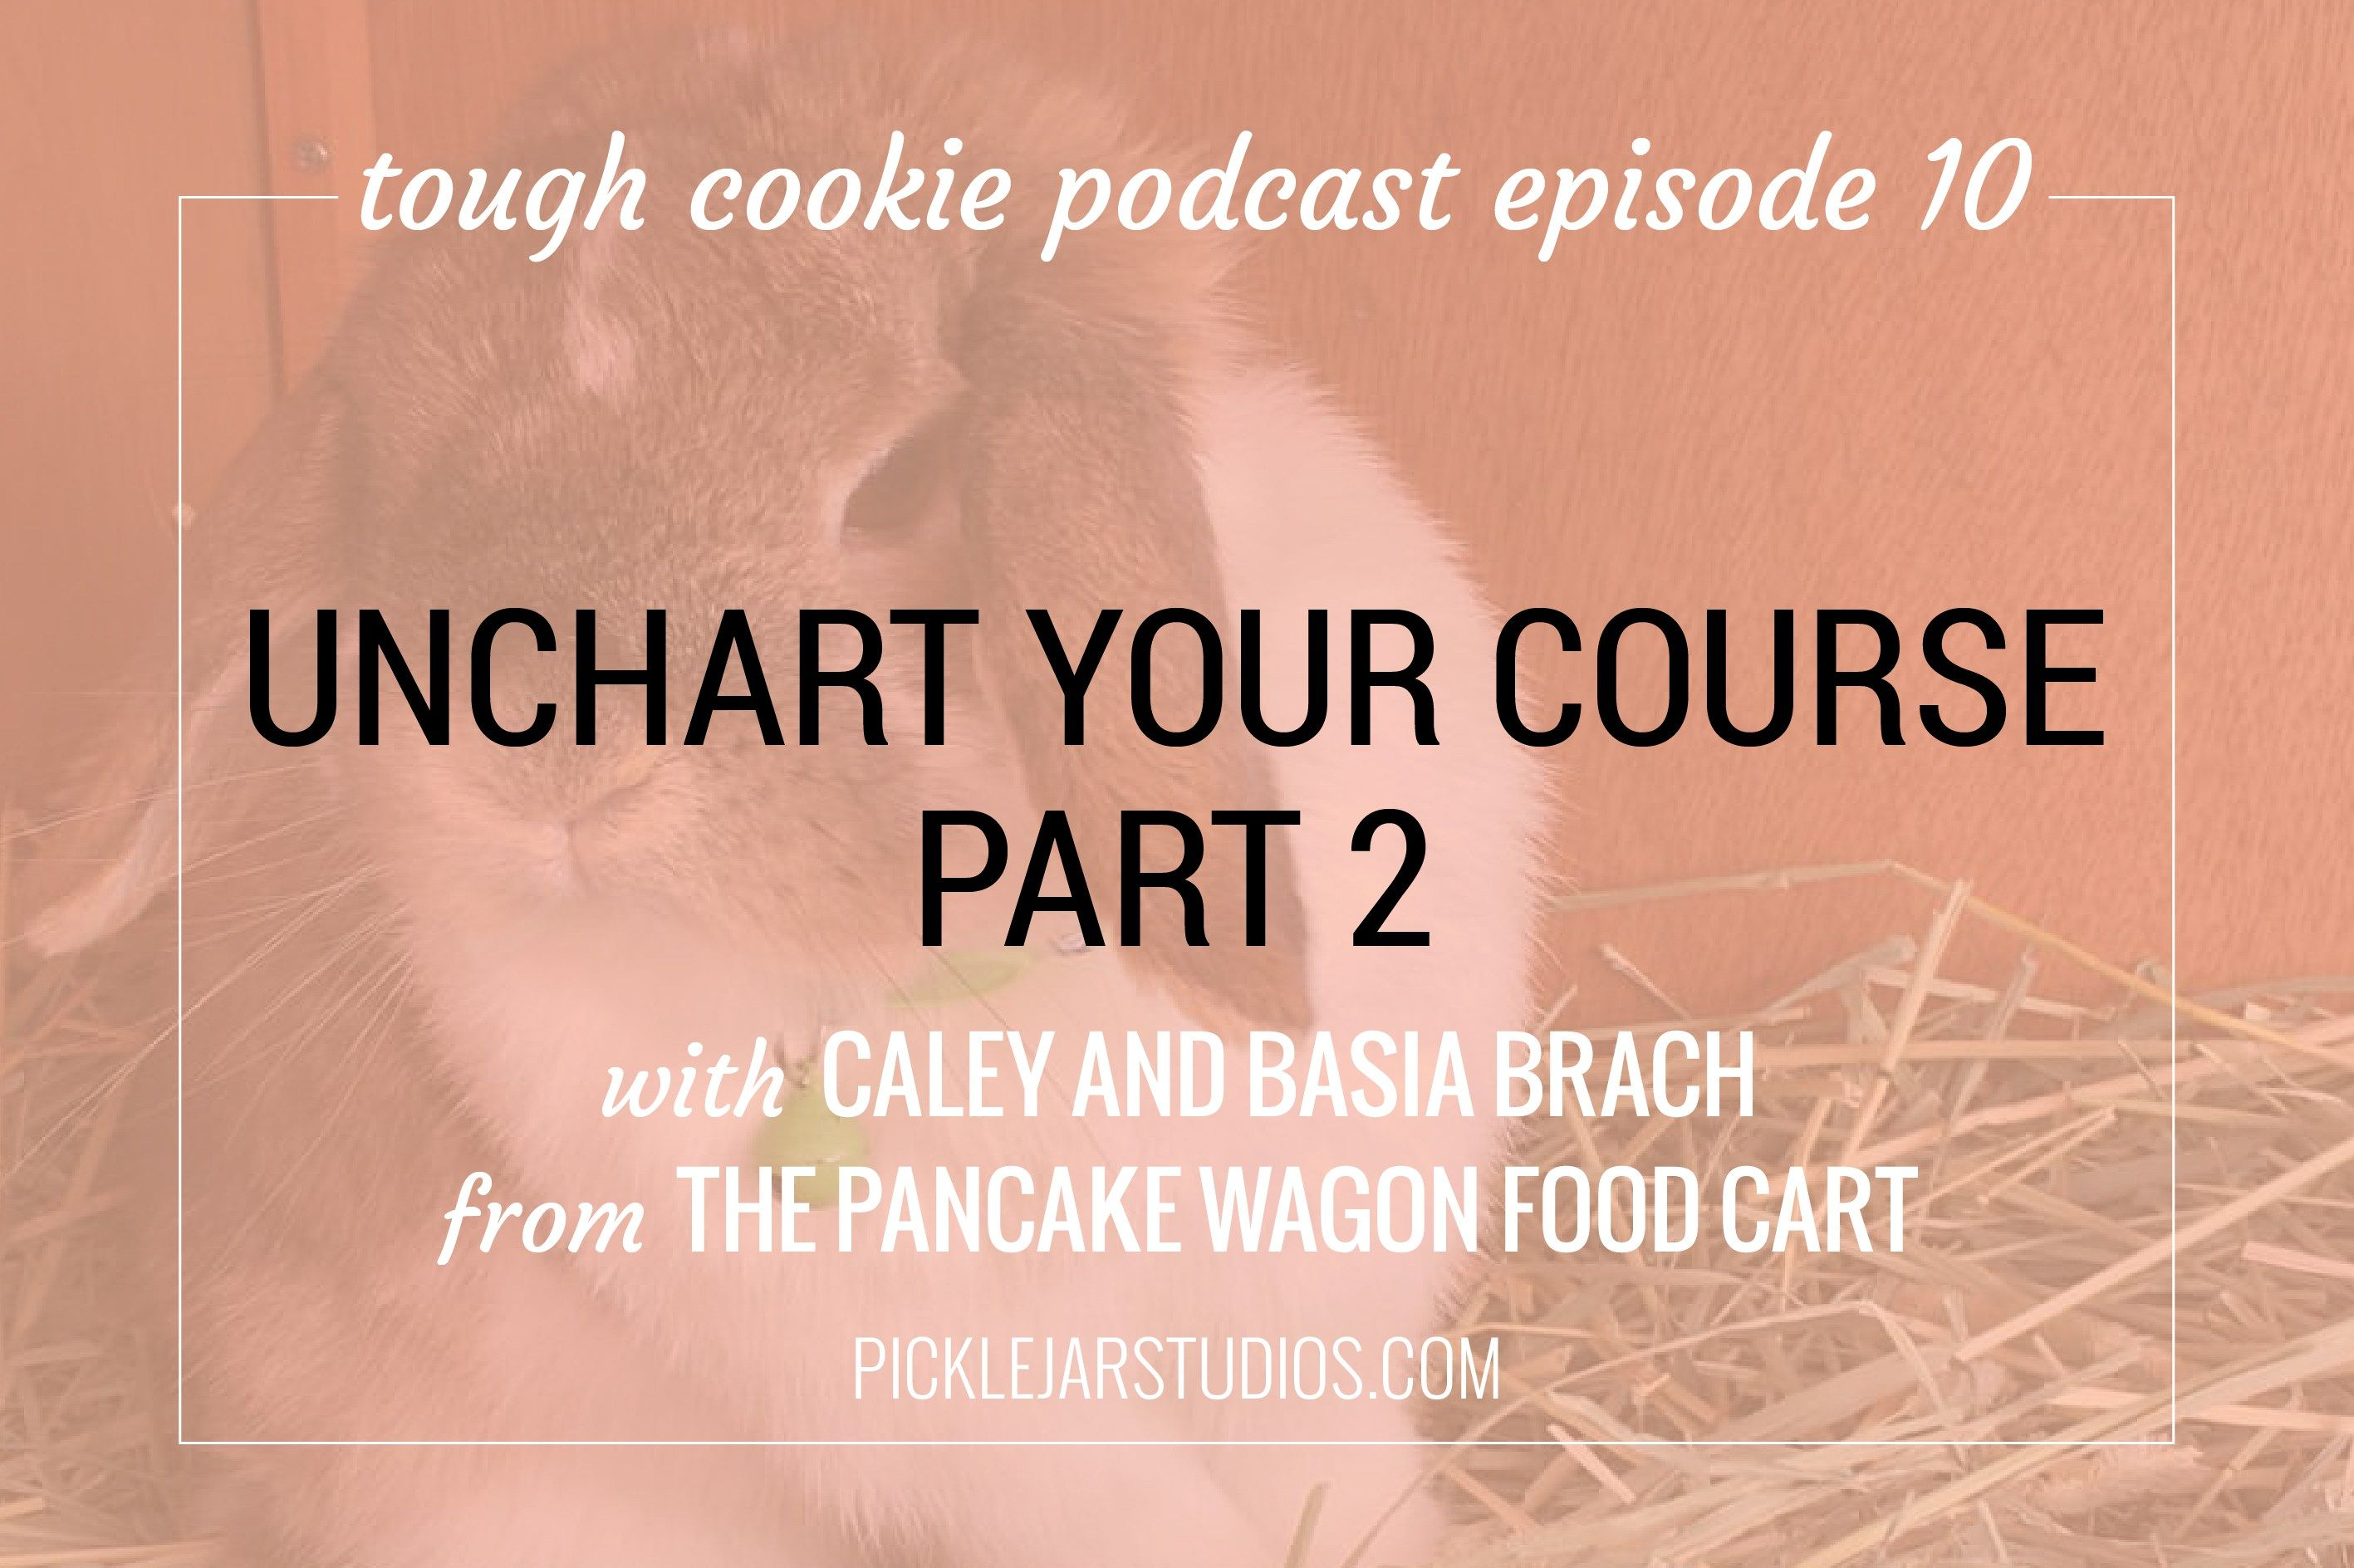 Tough Cookie Podcast - Episode 10 - Unchart your course with